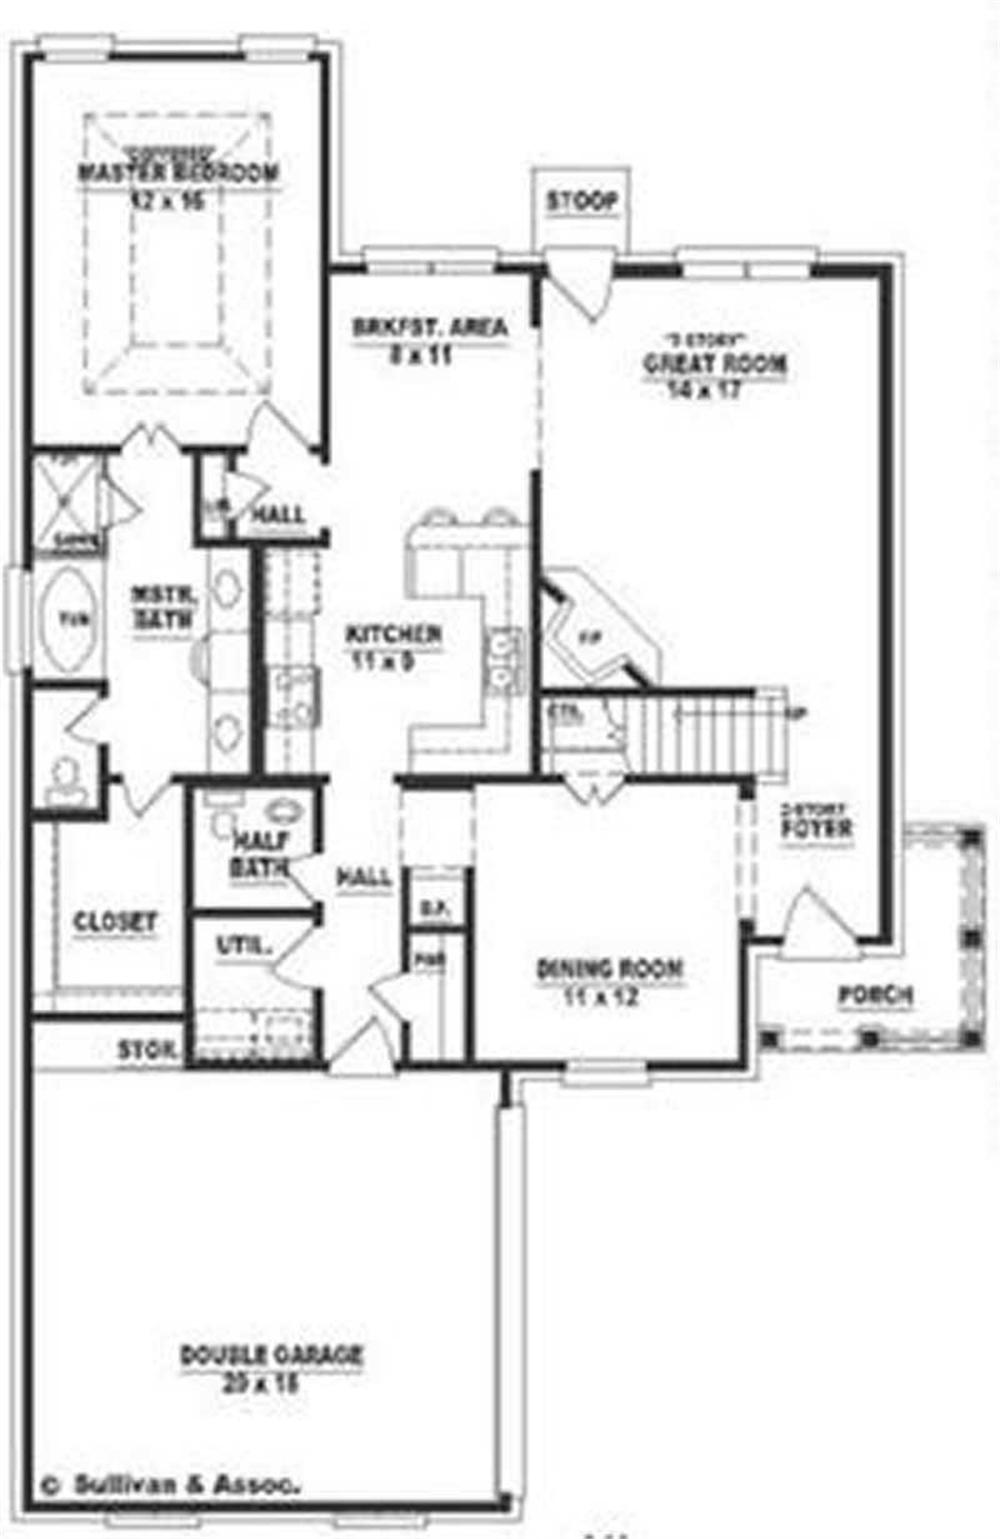 Large images for house plan 170 3357 for Home plan collection